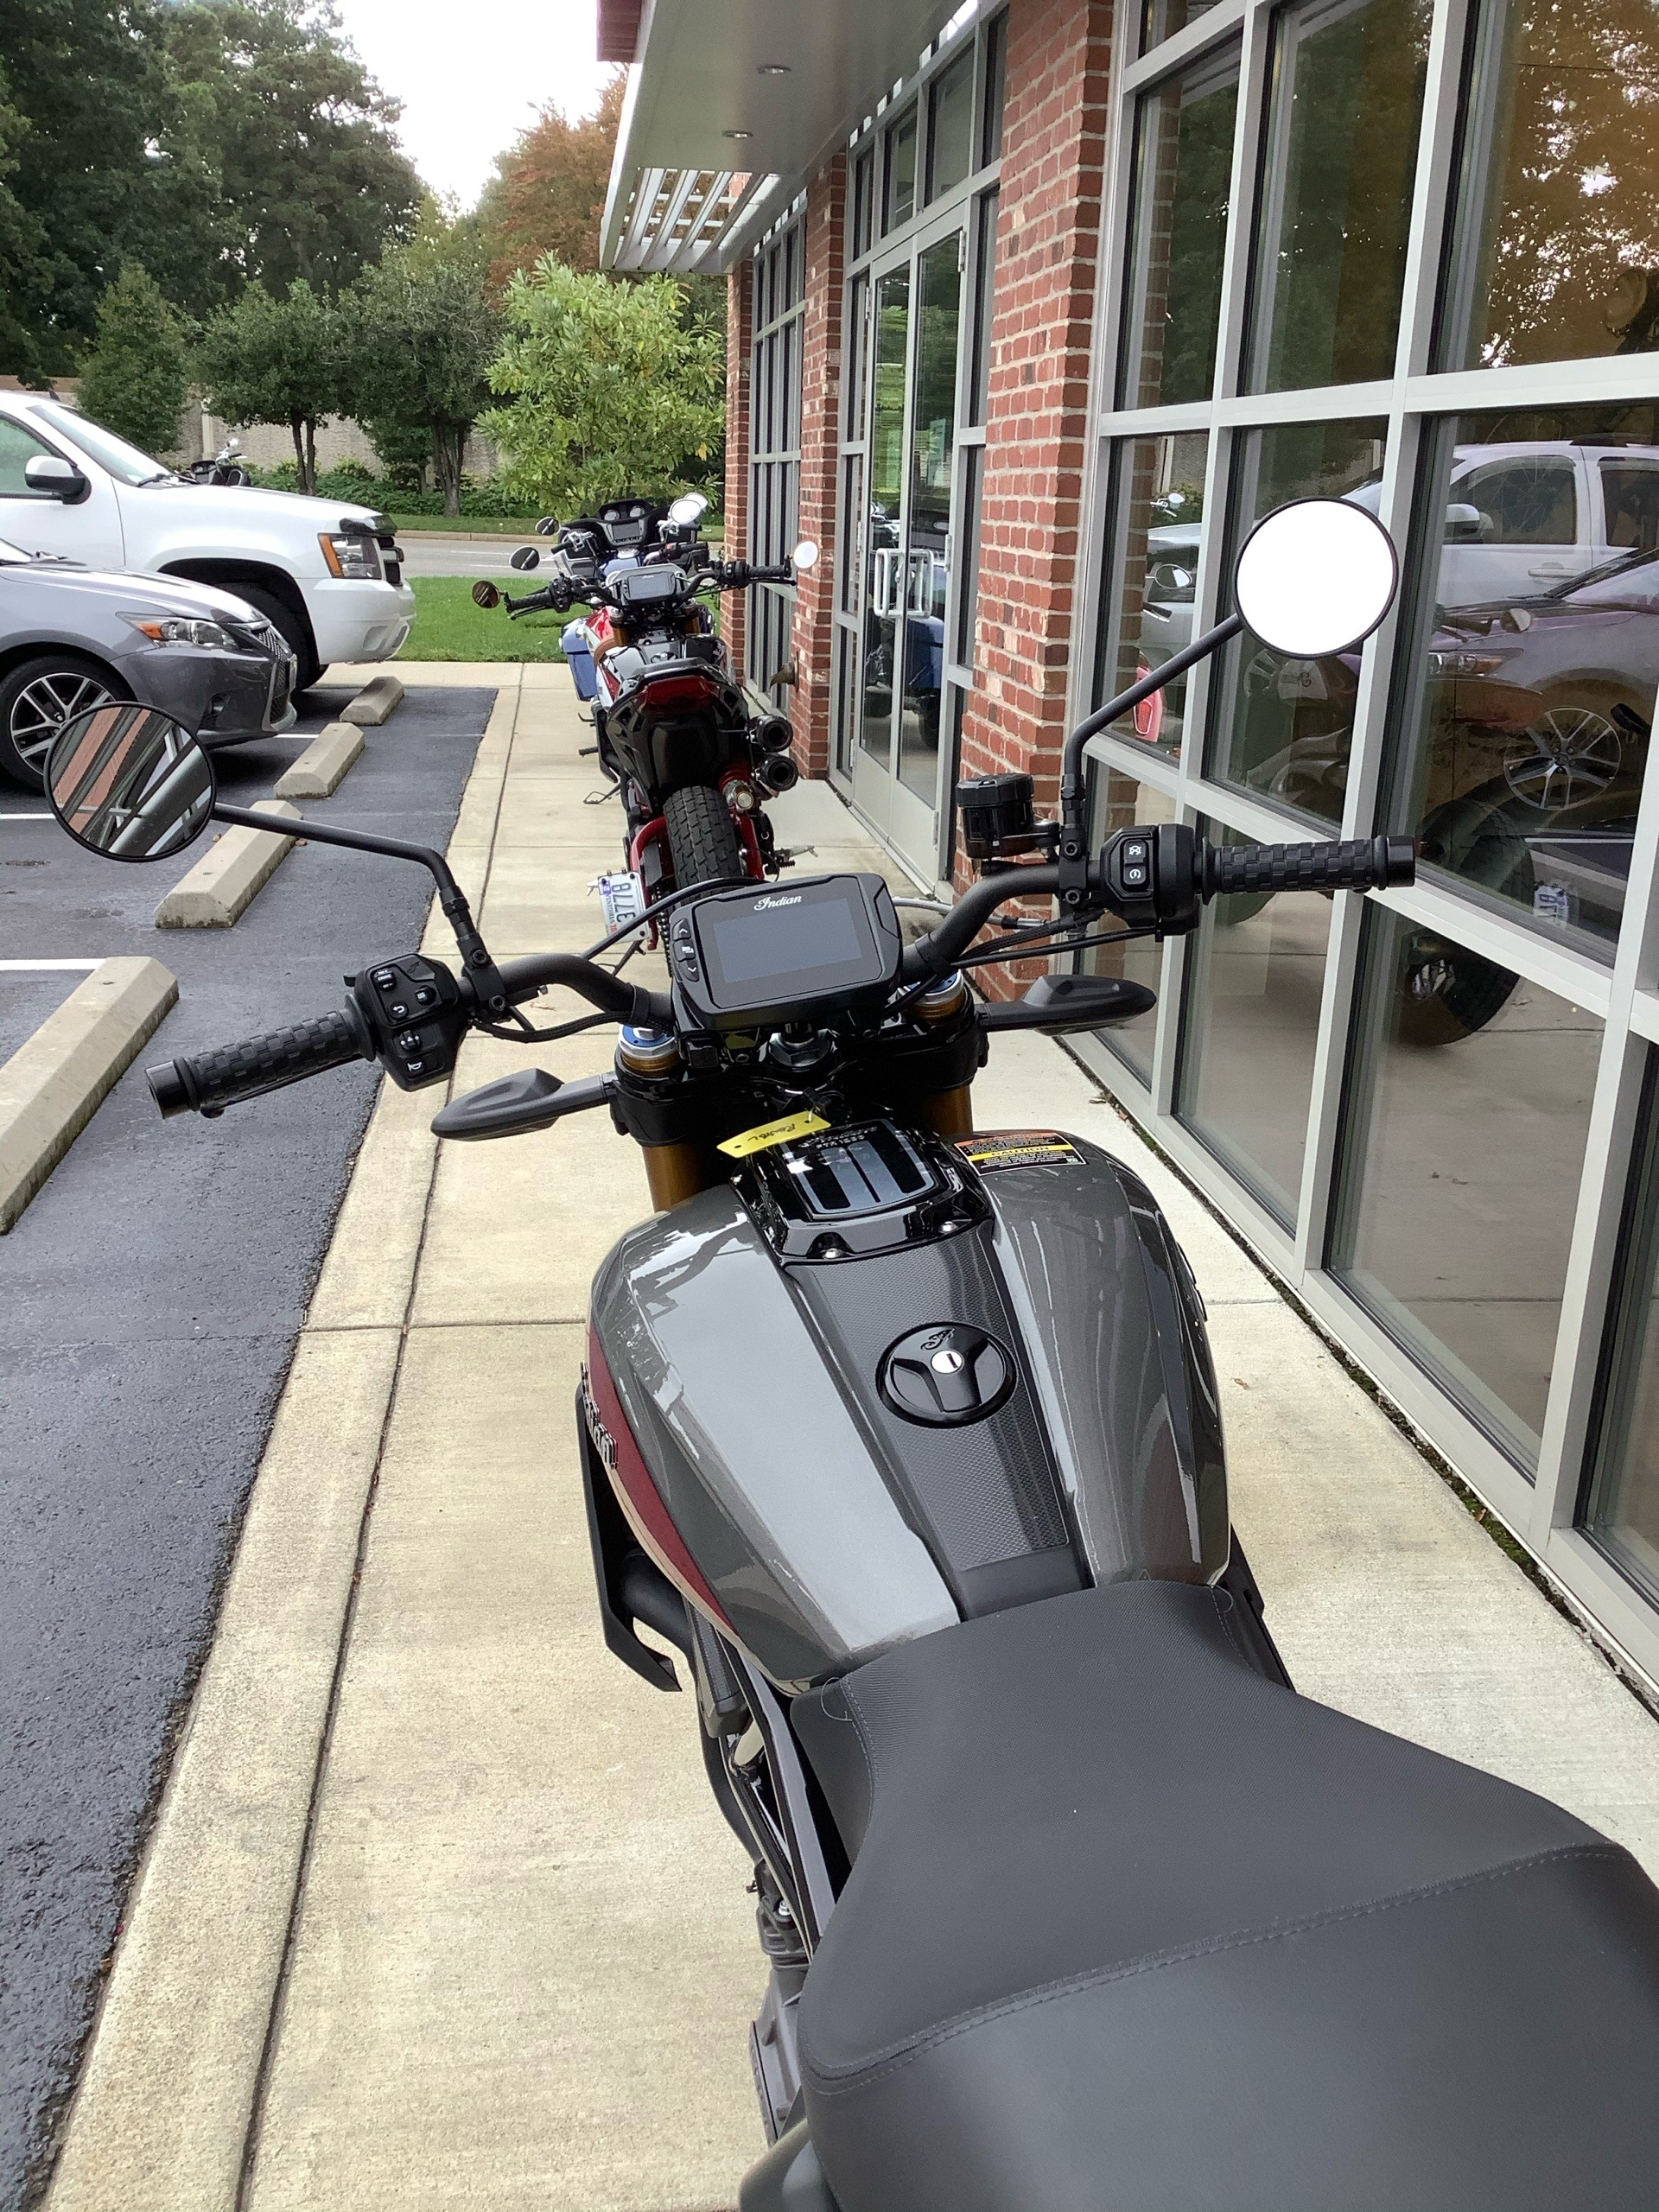 2019 Indian FTR™ 1200 S in Newport News, Virginia - Photo 4